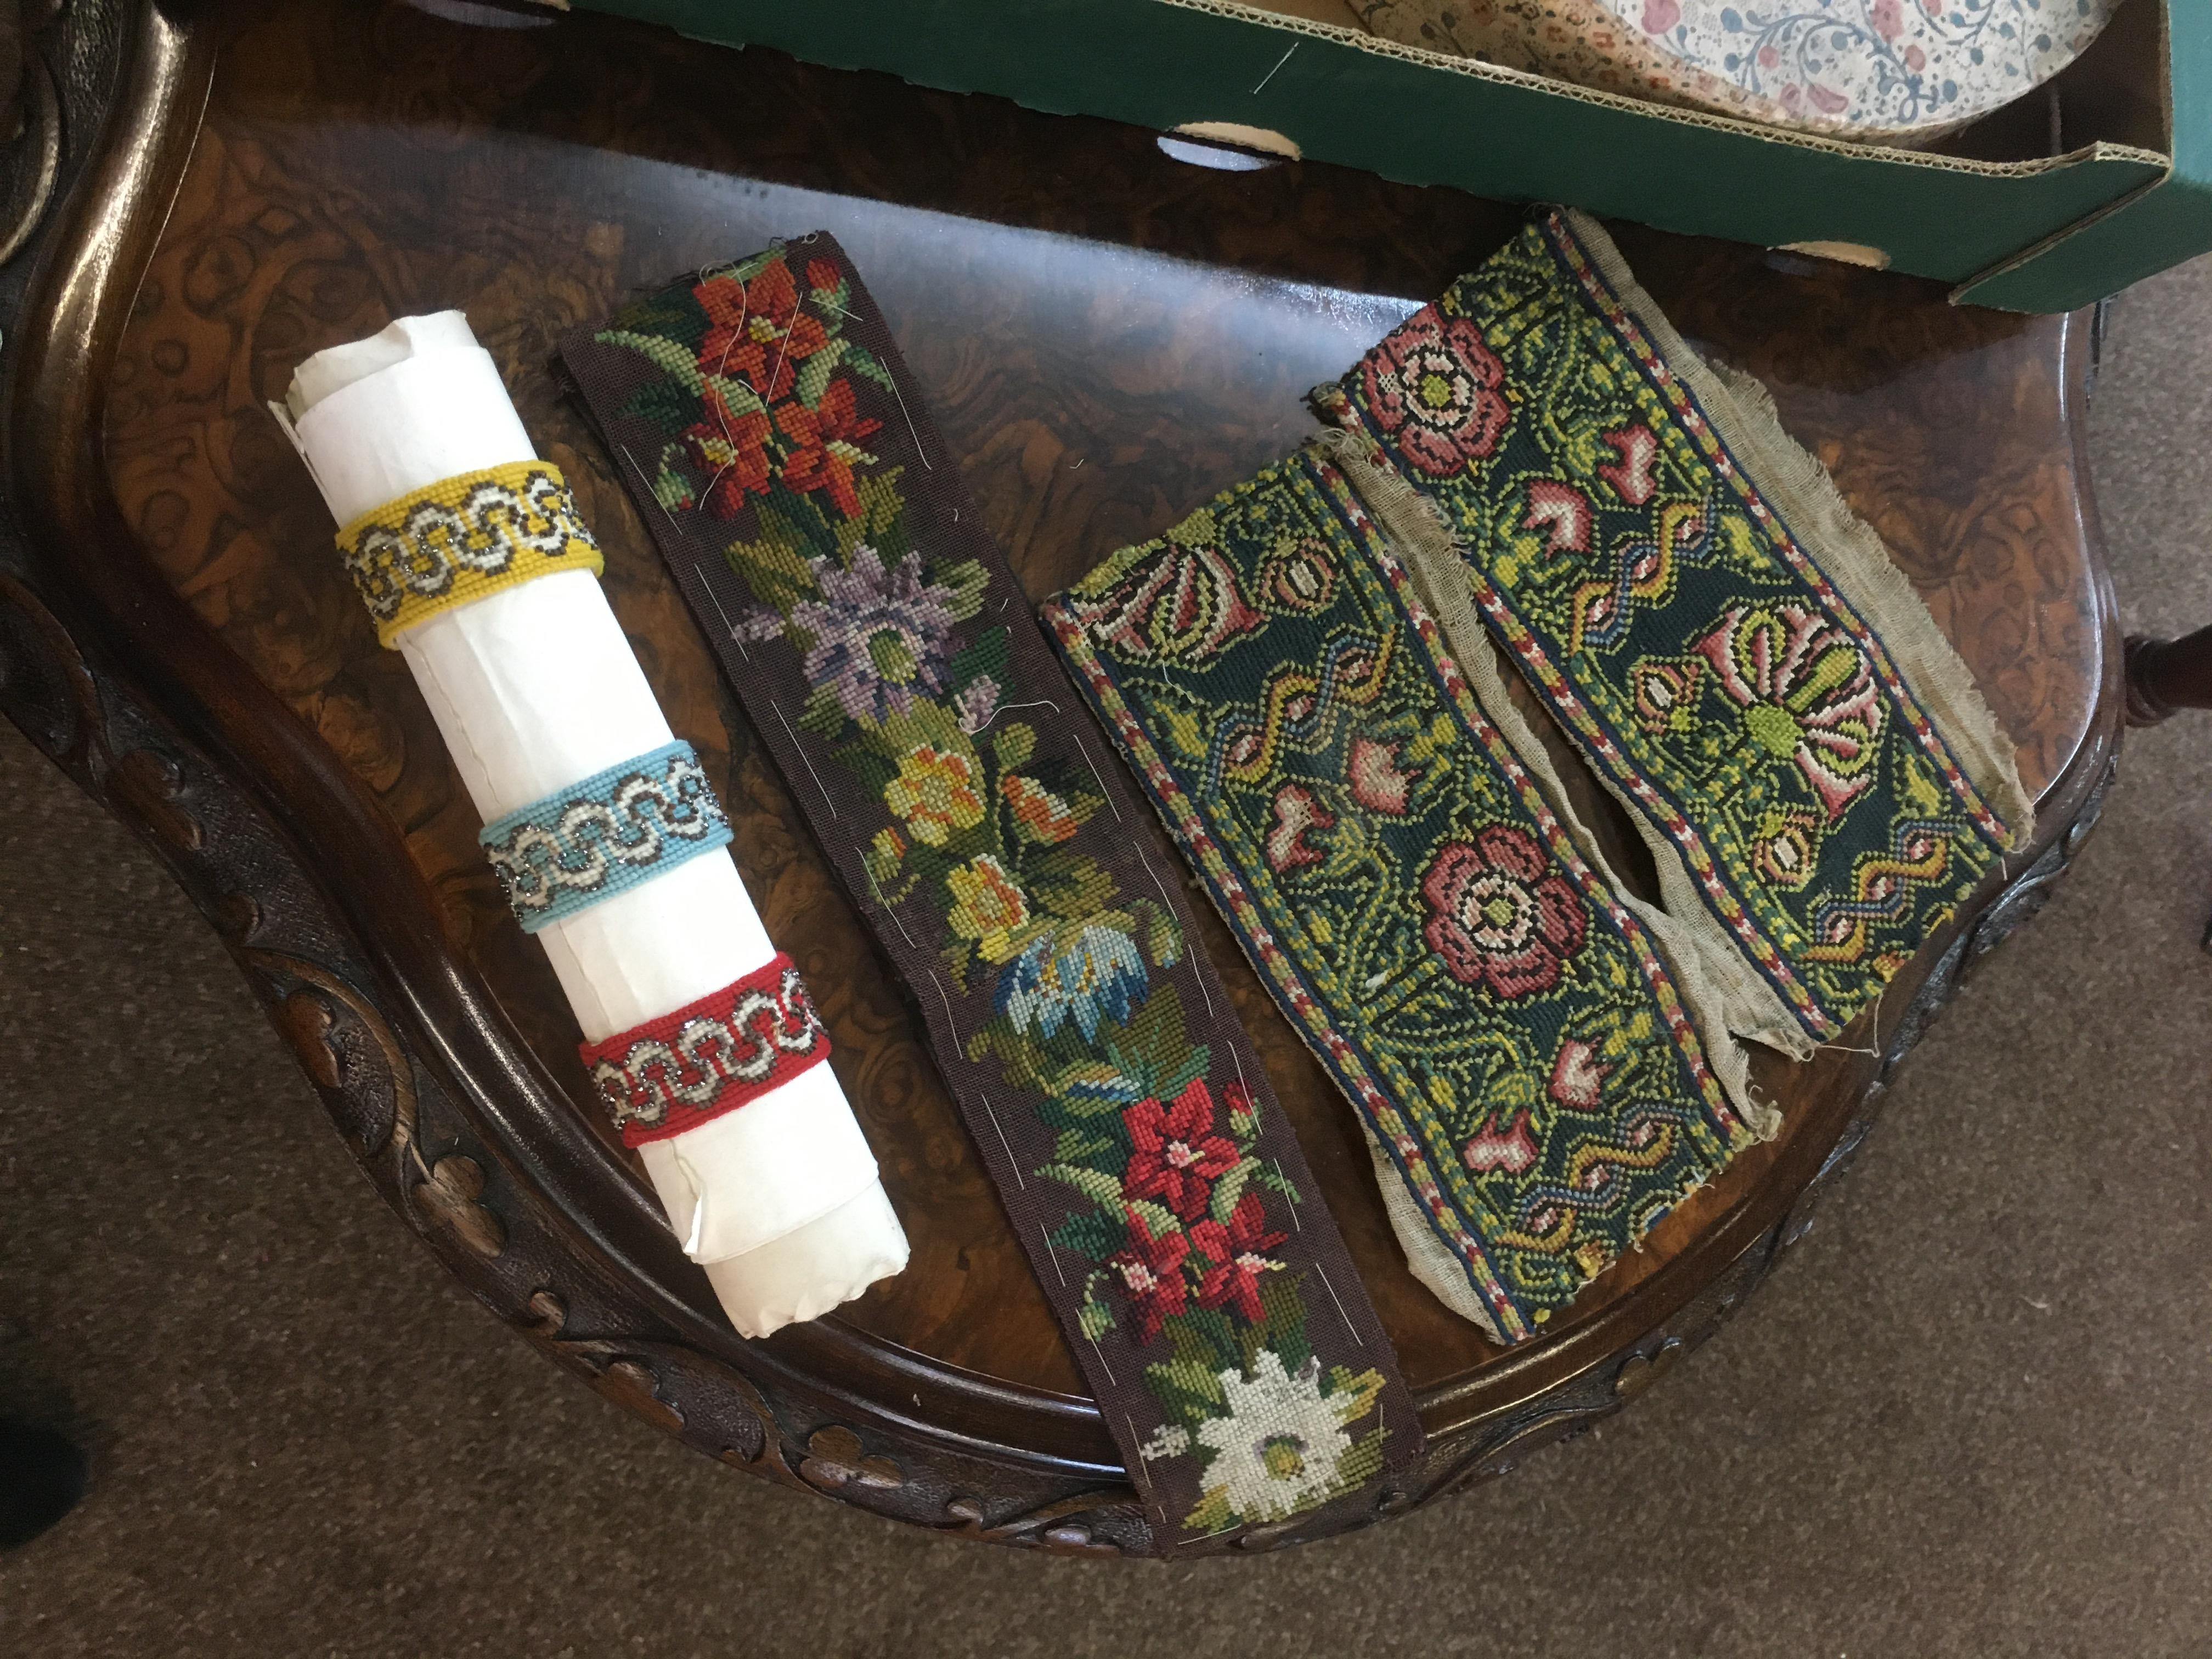 Lot 1851 - 18TH & 19THC TEXTILES an interesting collection of 18th and 19thc small textiles, comprising small